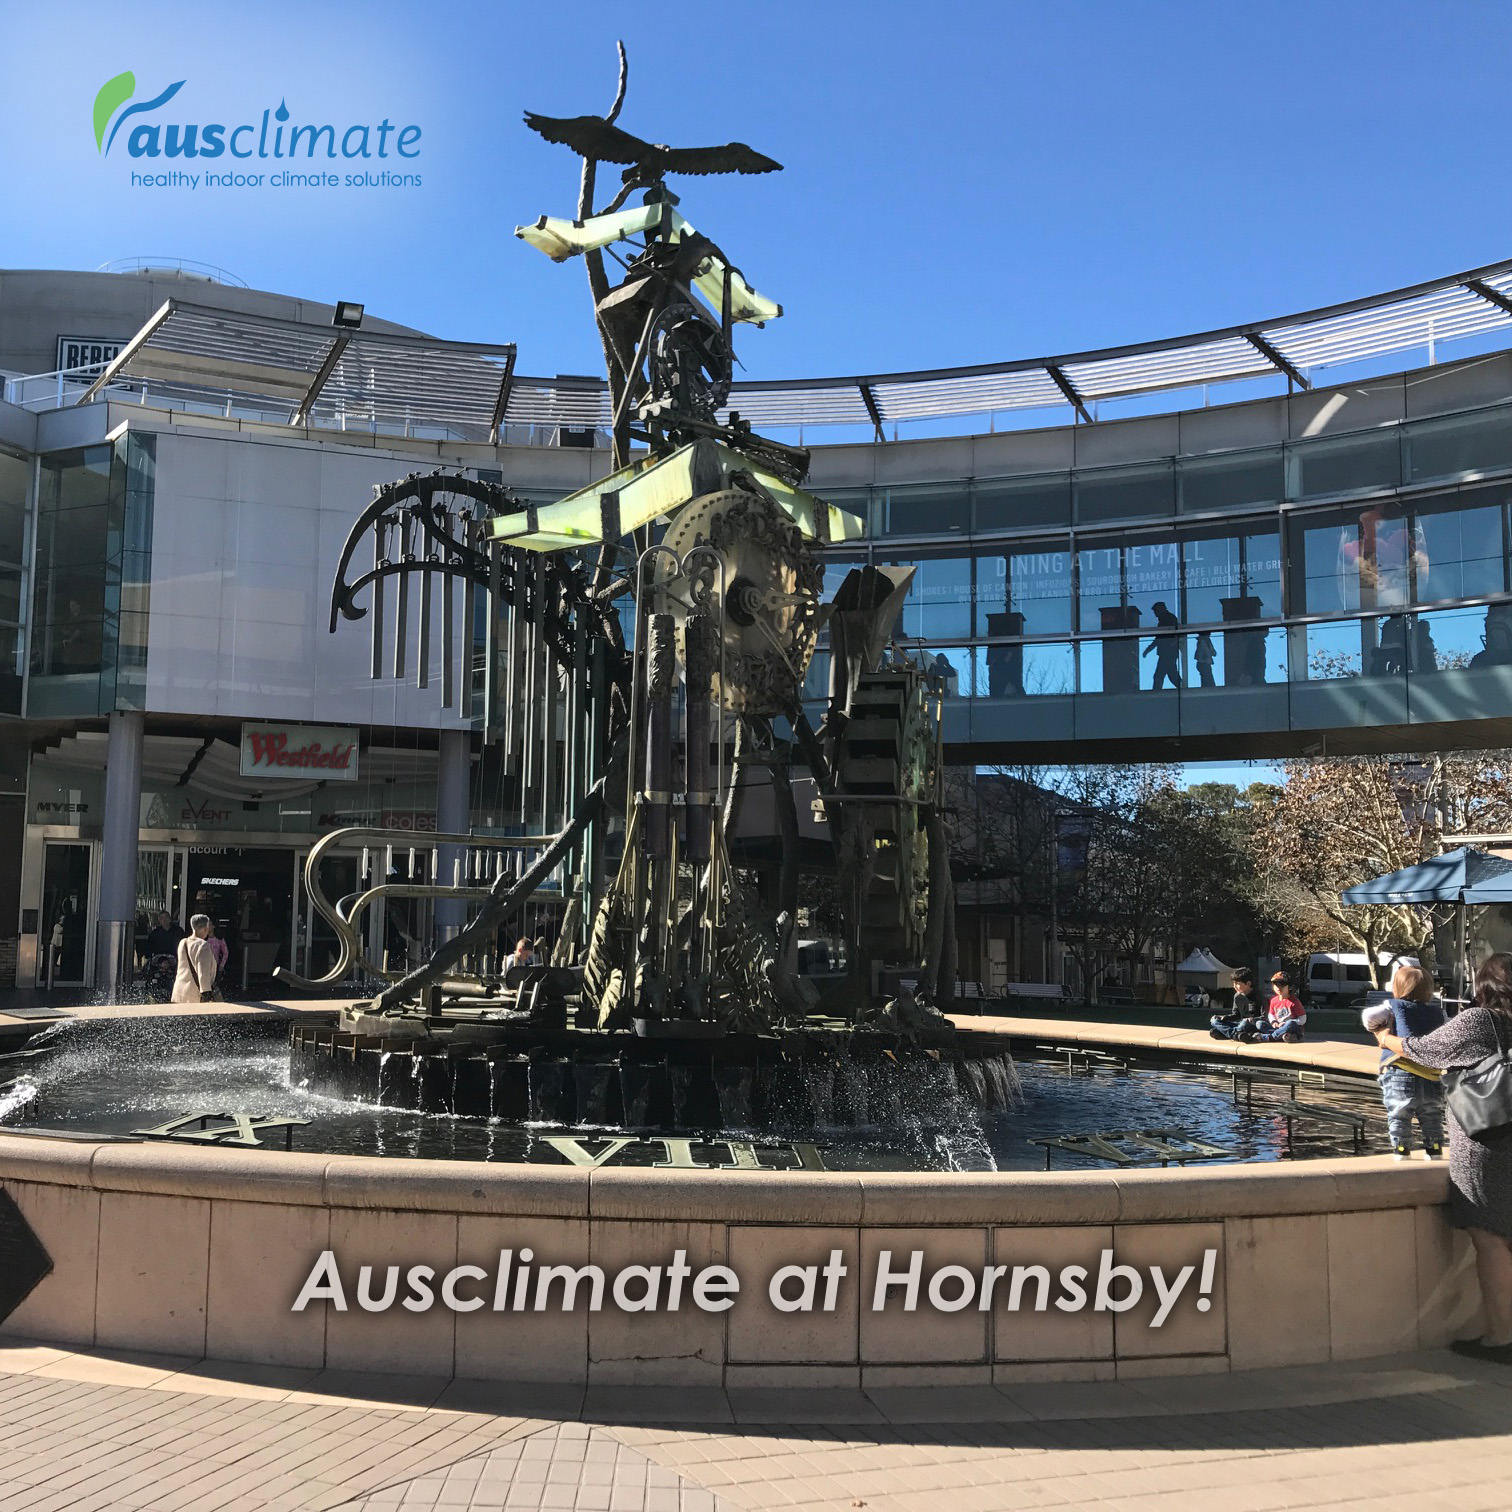 Ausclimate at Hornsby